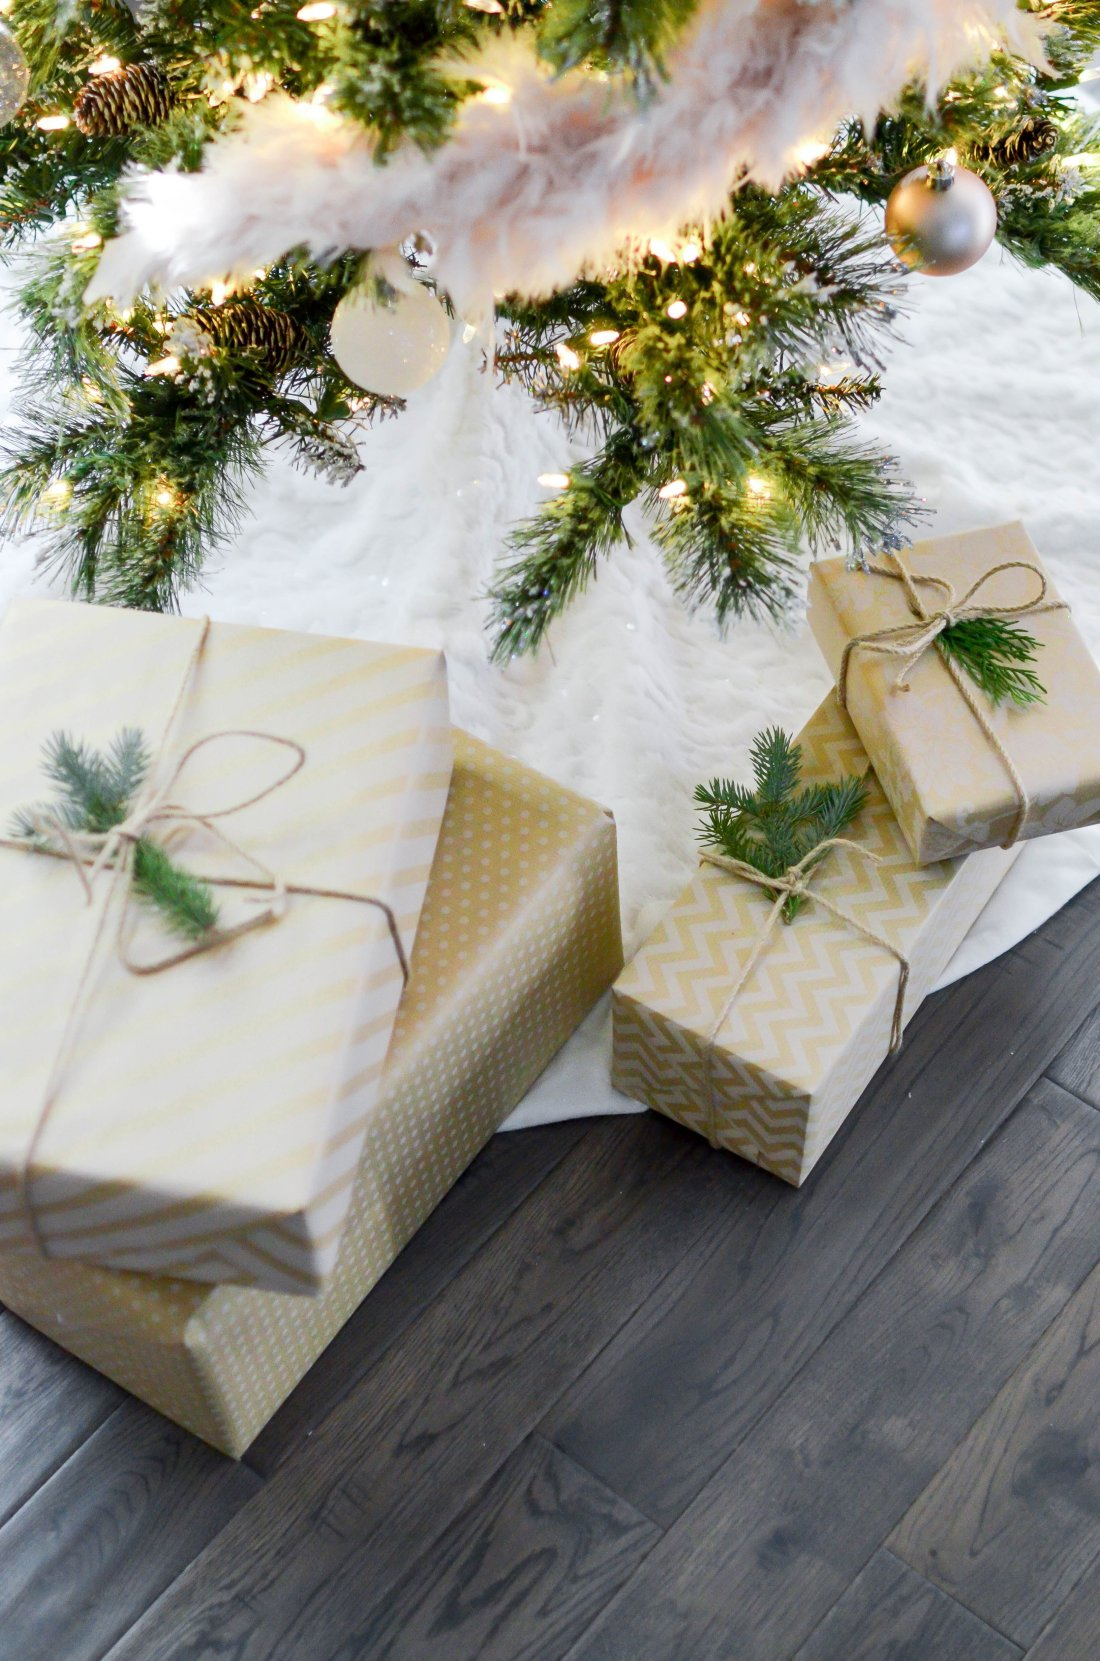 Move over Halloween, it's time to switch gears to Christmas. If you're ready to start your holiday shopping but at a loss for ideas, check out The Best Holiday Gift Guide For Tech Lovers of All Ages. We have something for every man, woman, and child.